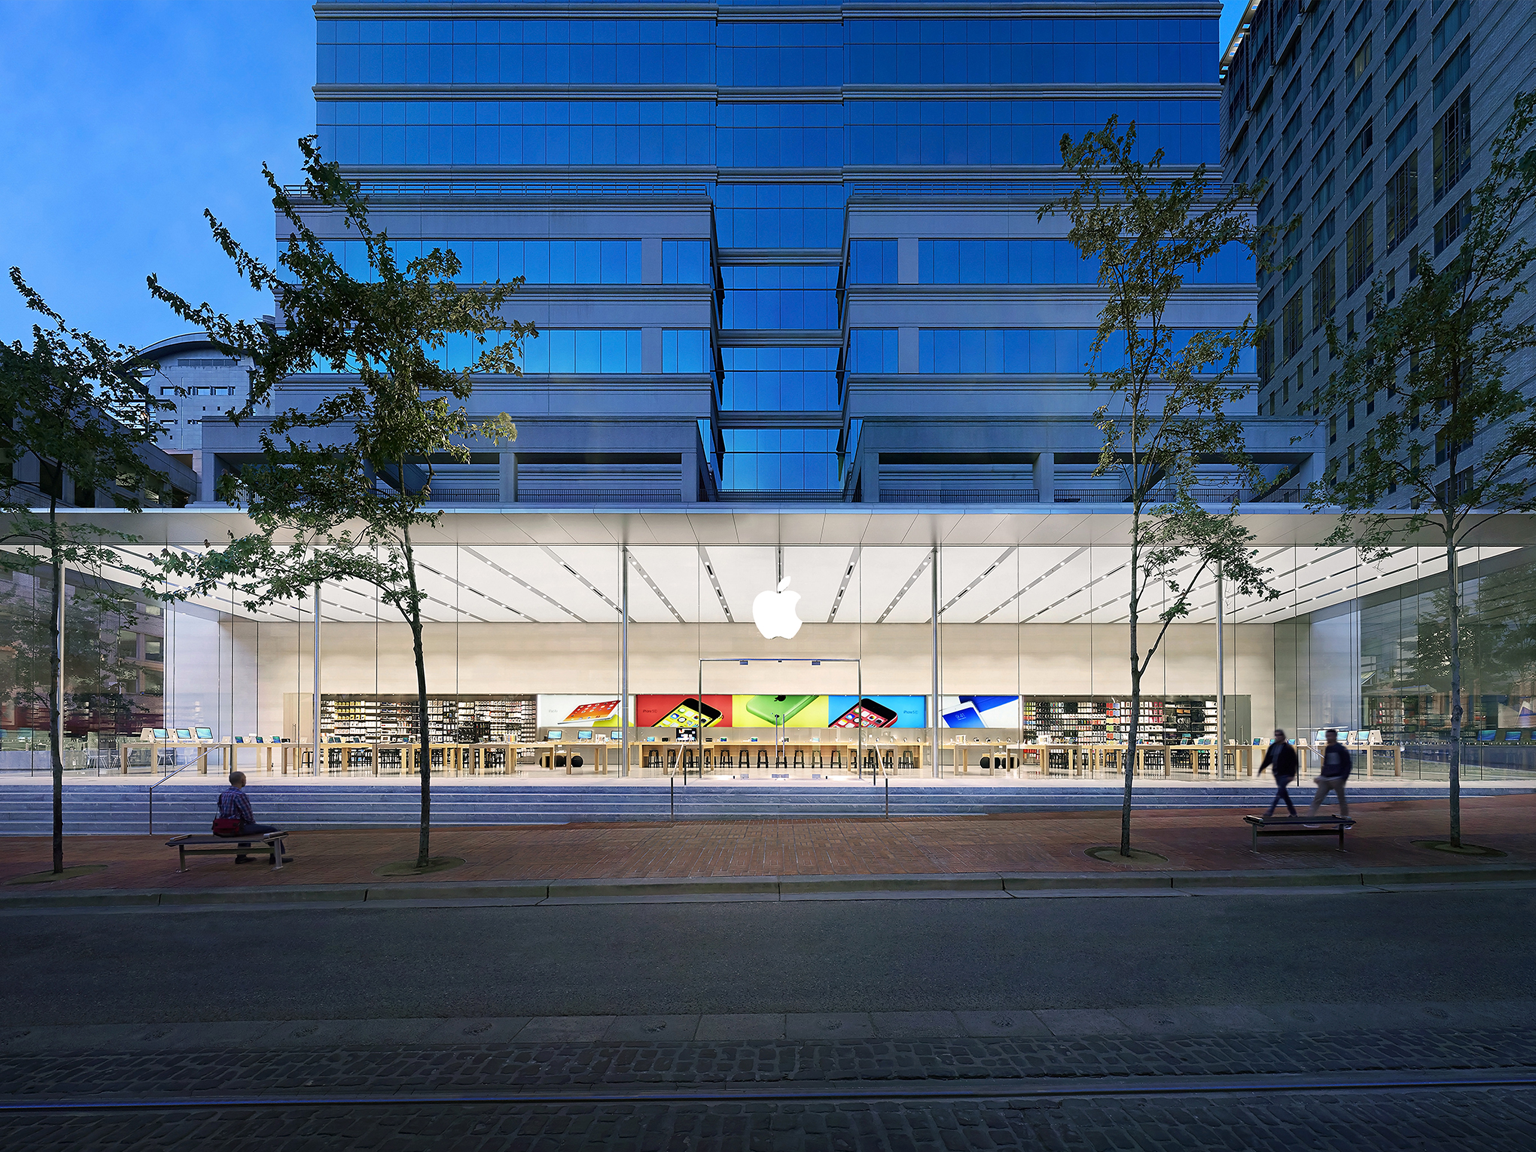 map ouest with Apple Store Pioneer Place 24298223 on 46184875 likewise Mapus moreover Karten furthermore Cntymap likewise 706 bonnie dell.